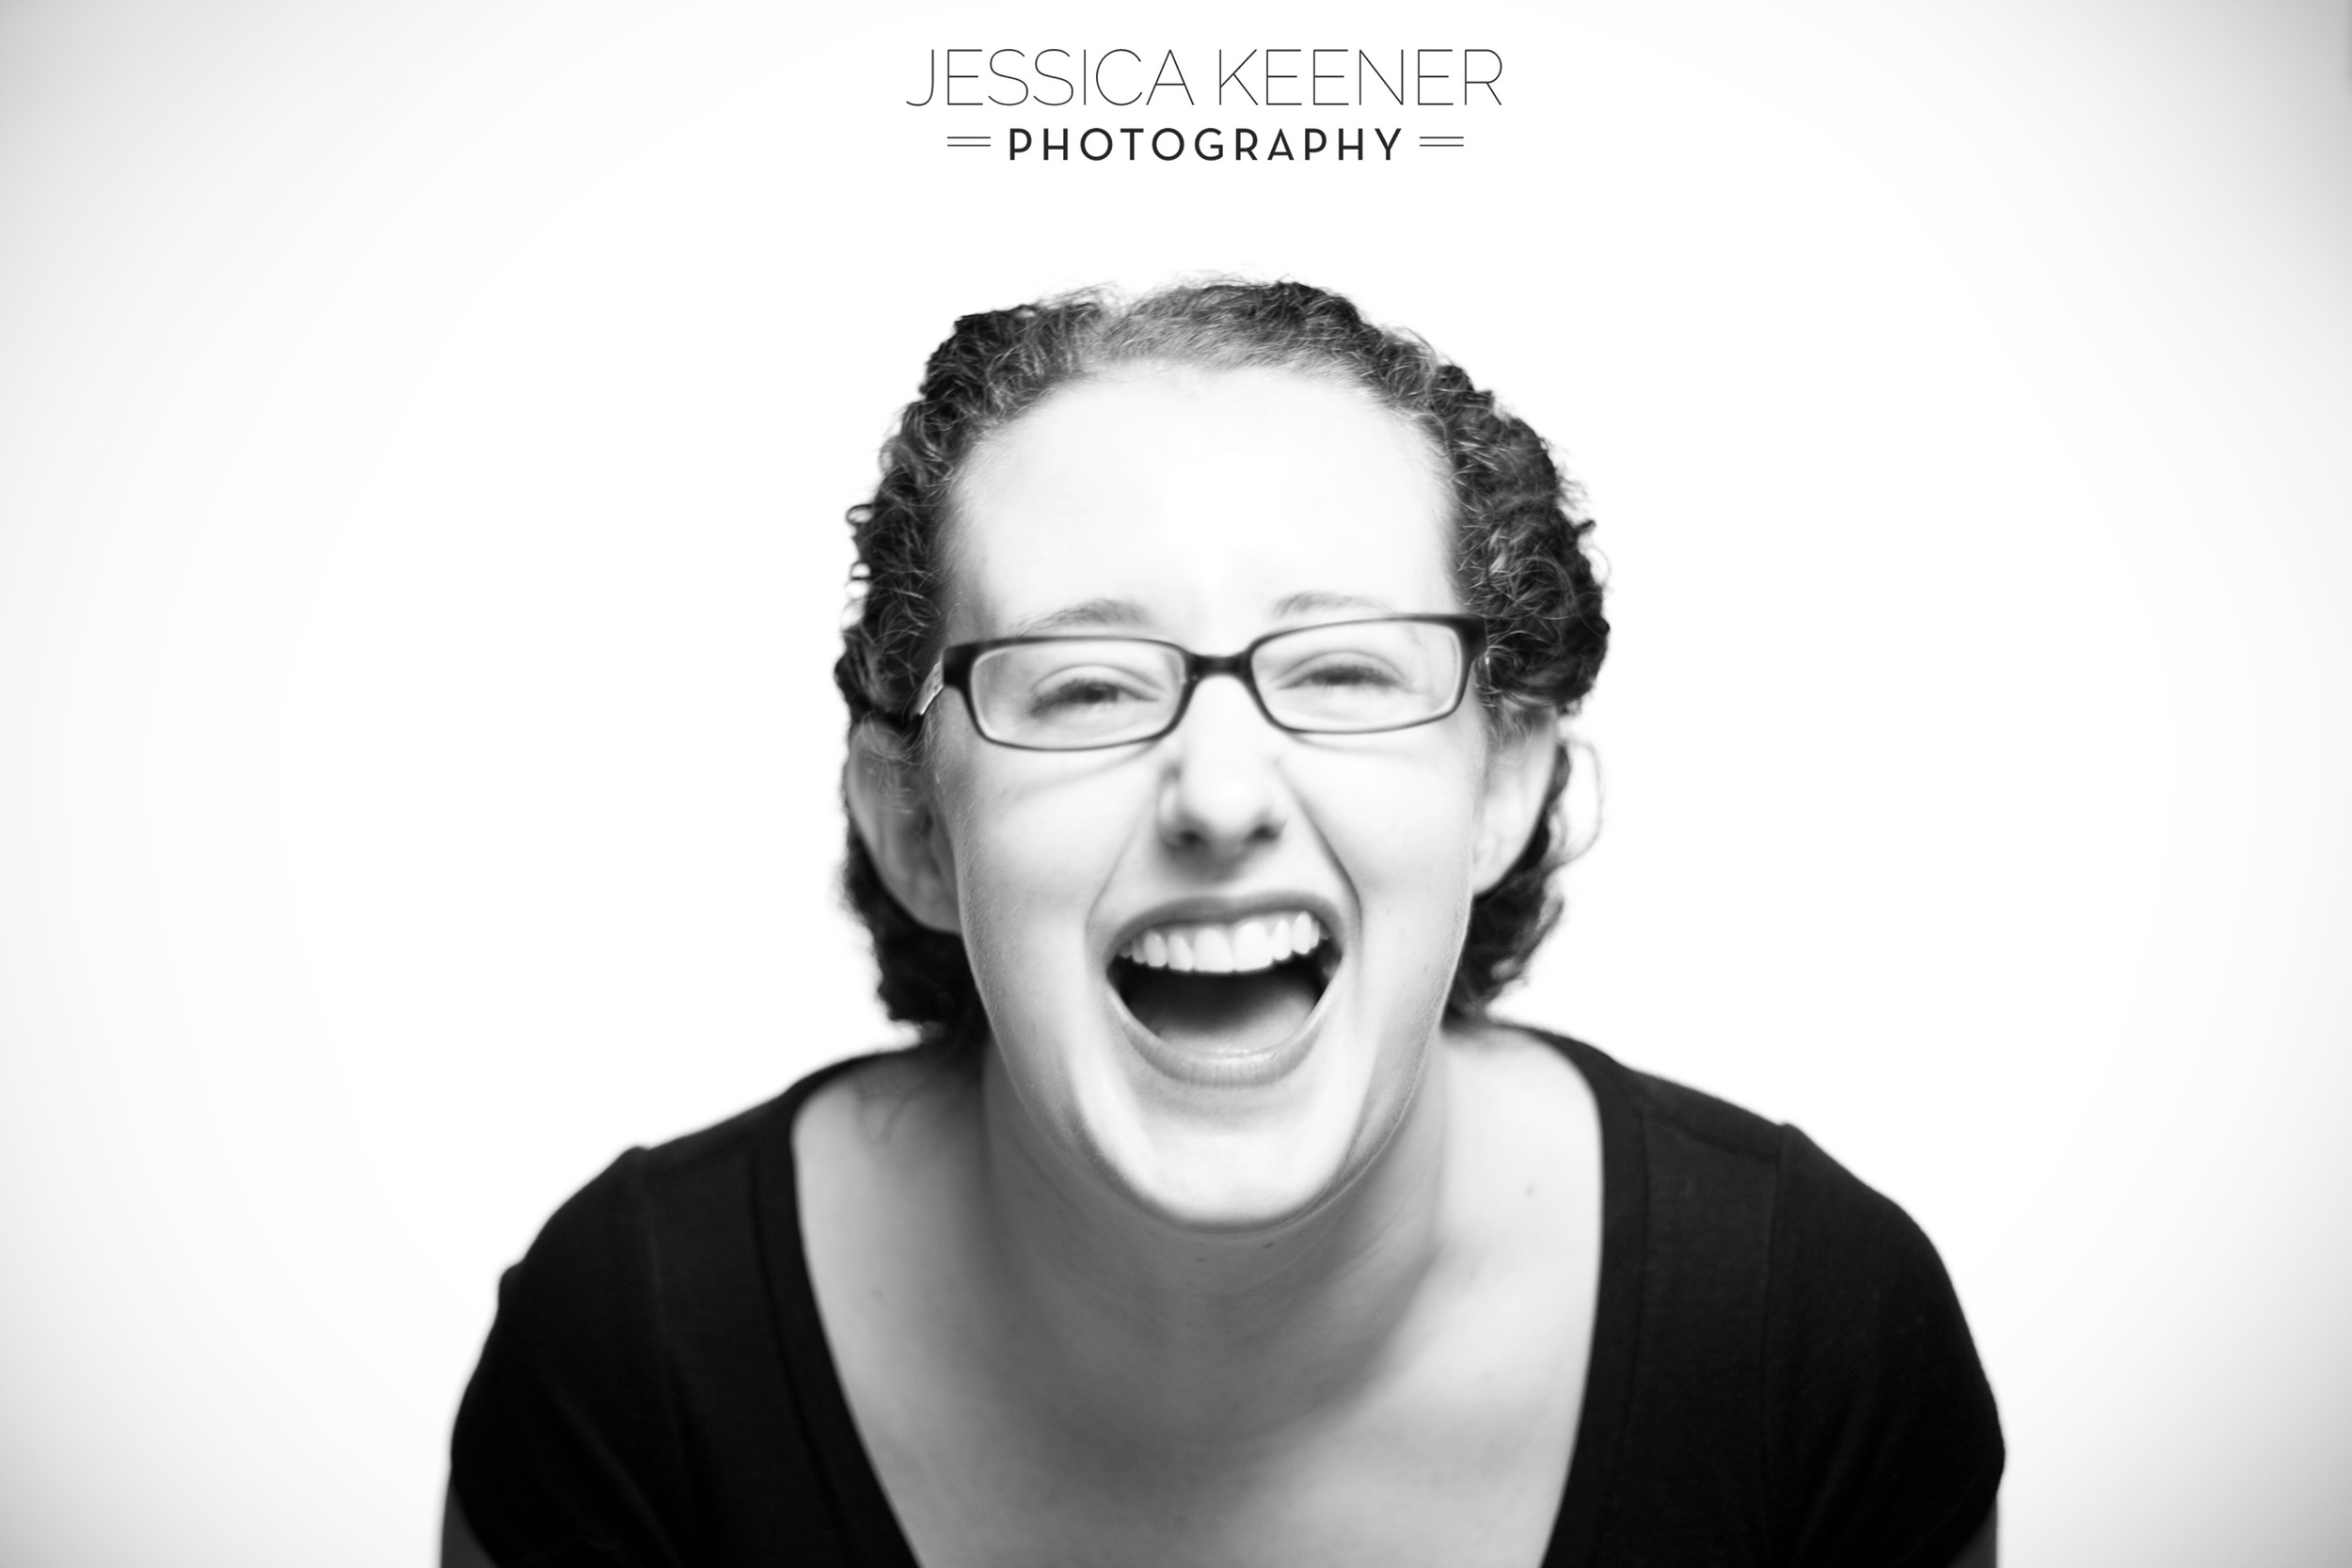 Jessica Keener Photography